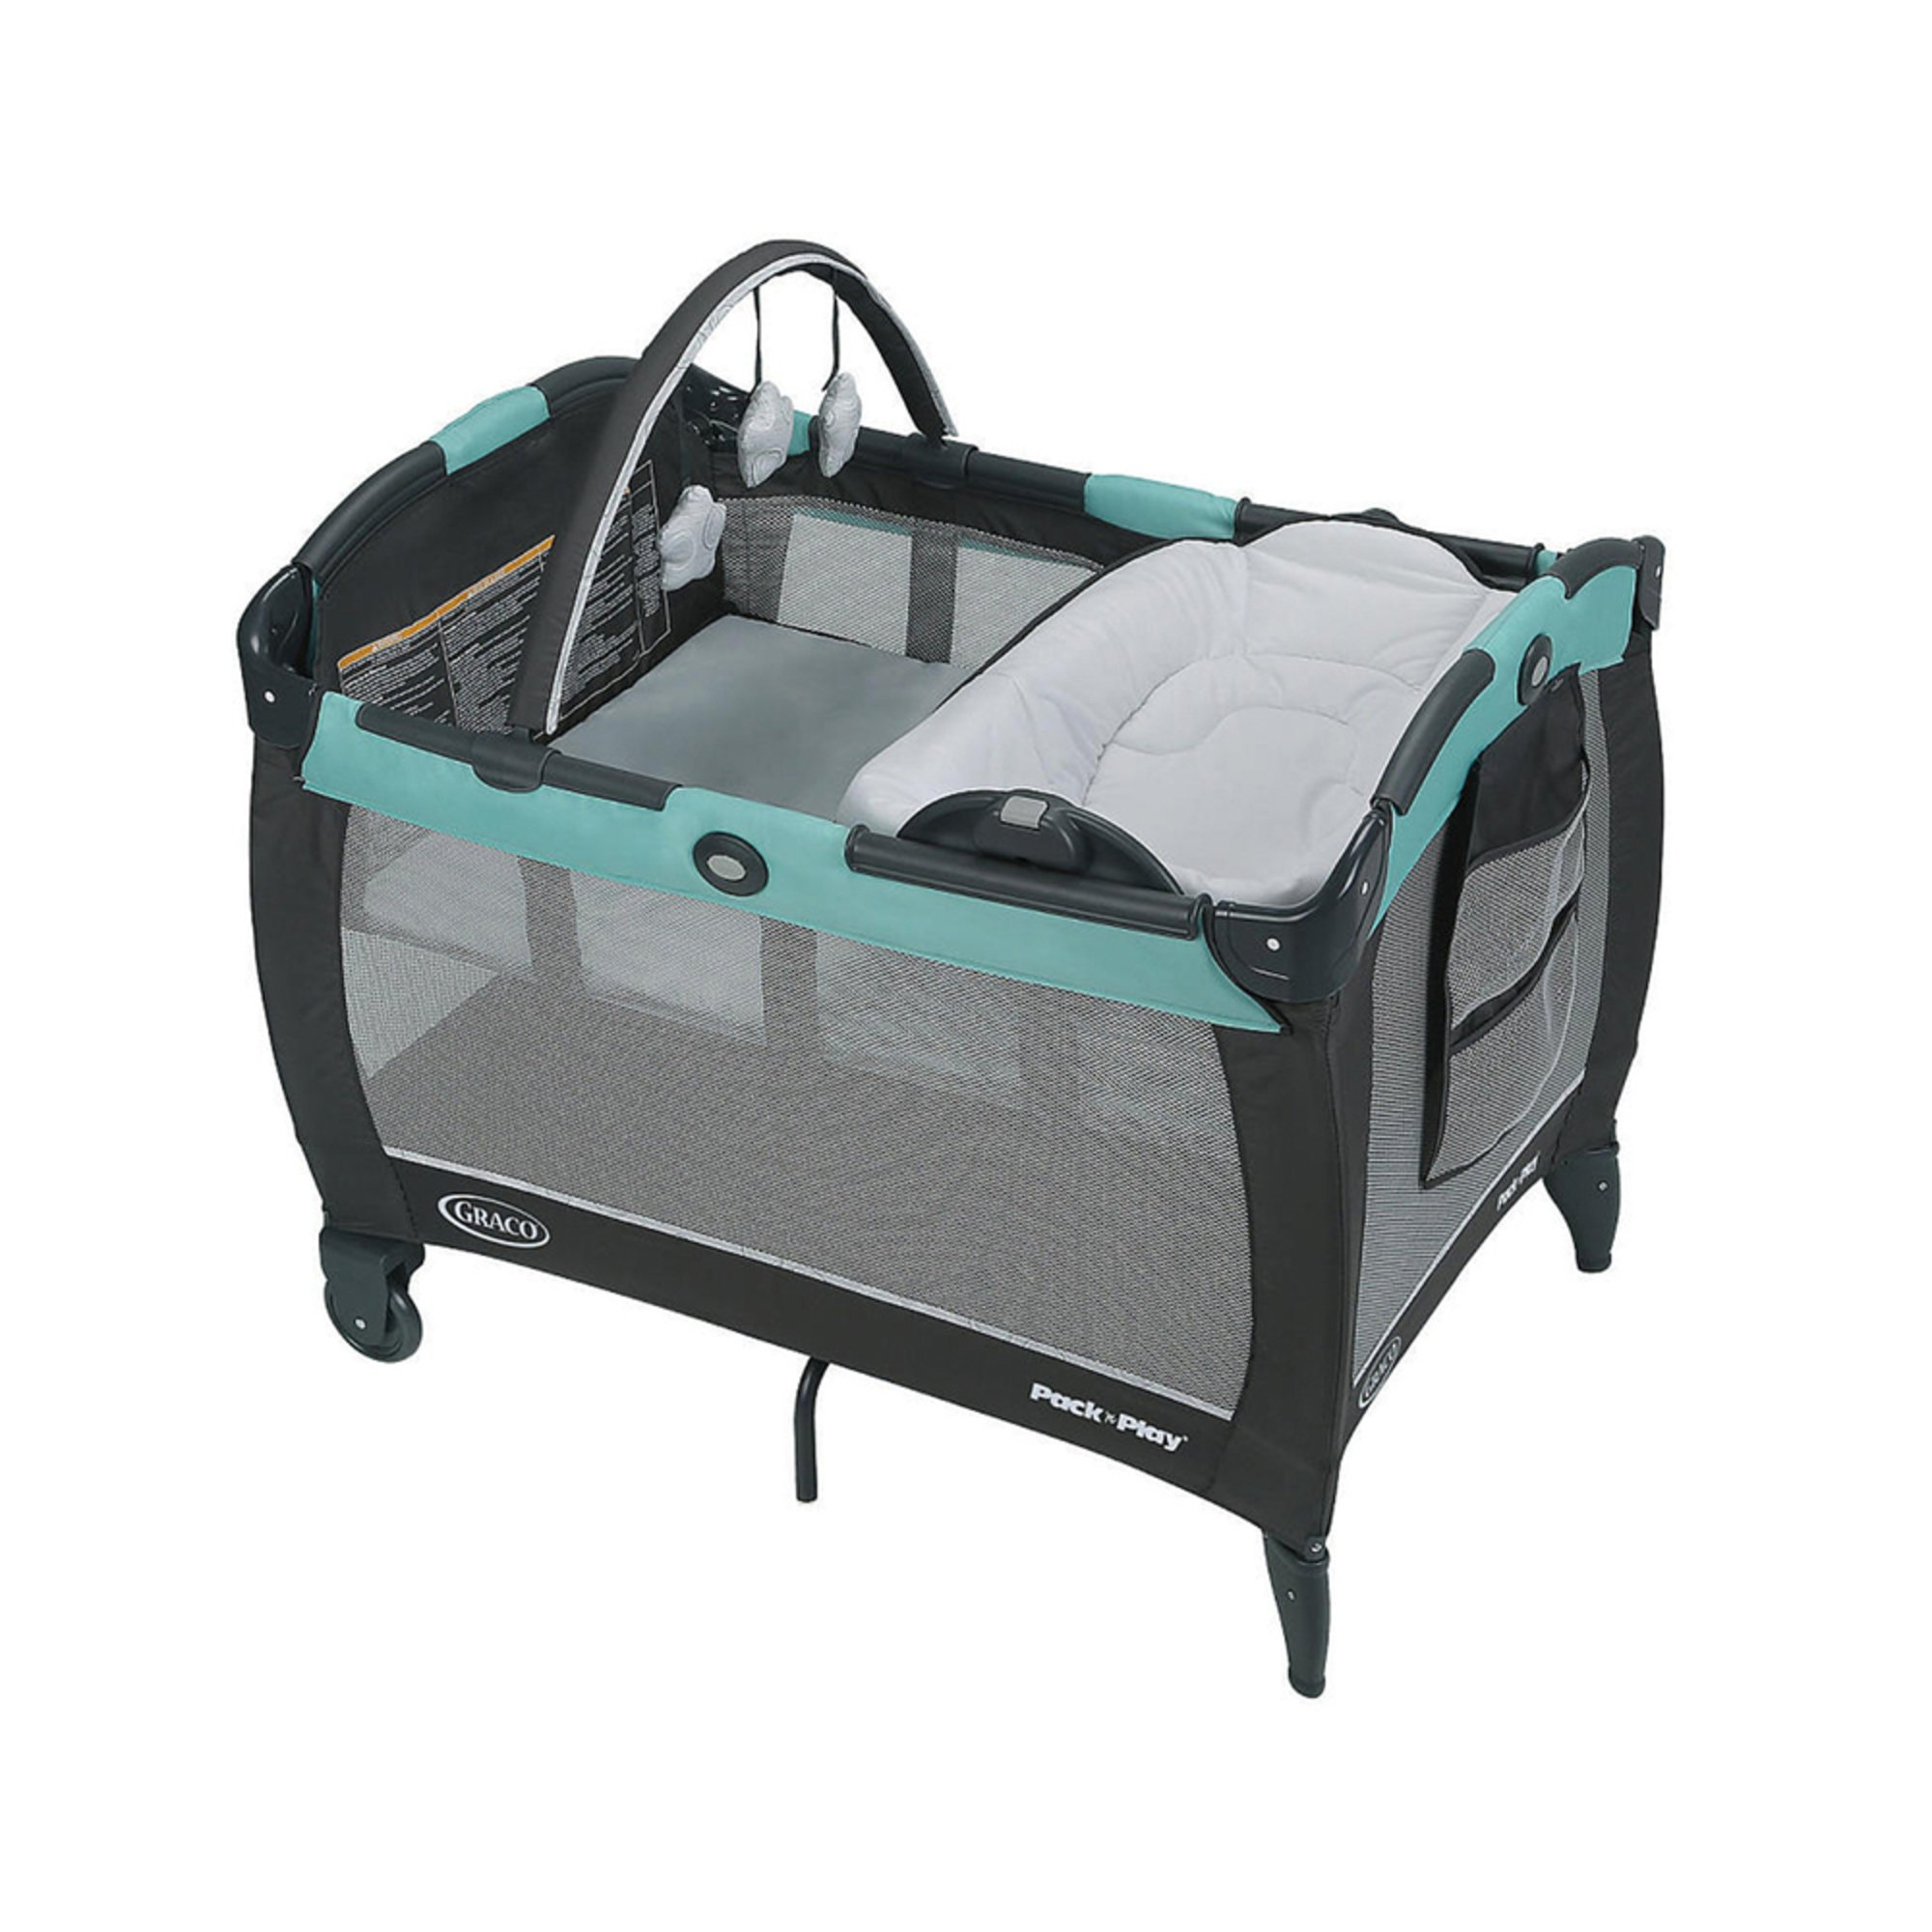 Graco Pack N Play Portable Reversible Napper Changer Playard Asteroid Portable Vacuum Danby Portable Air Conditioner 6000 Btu Review Portable Projector Price In Dubai: Graco Pack 'n Play Reversible Napper And Changer, Tenley